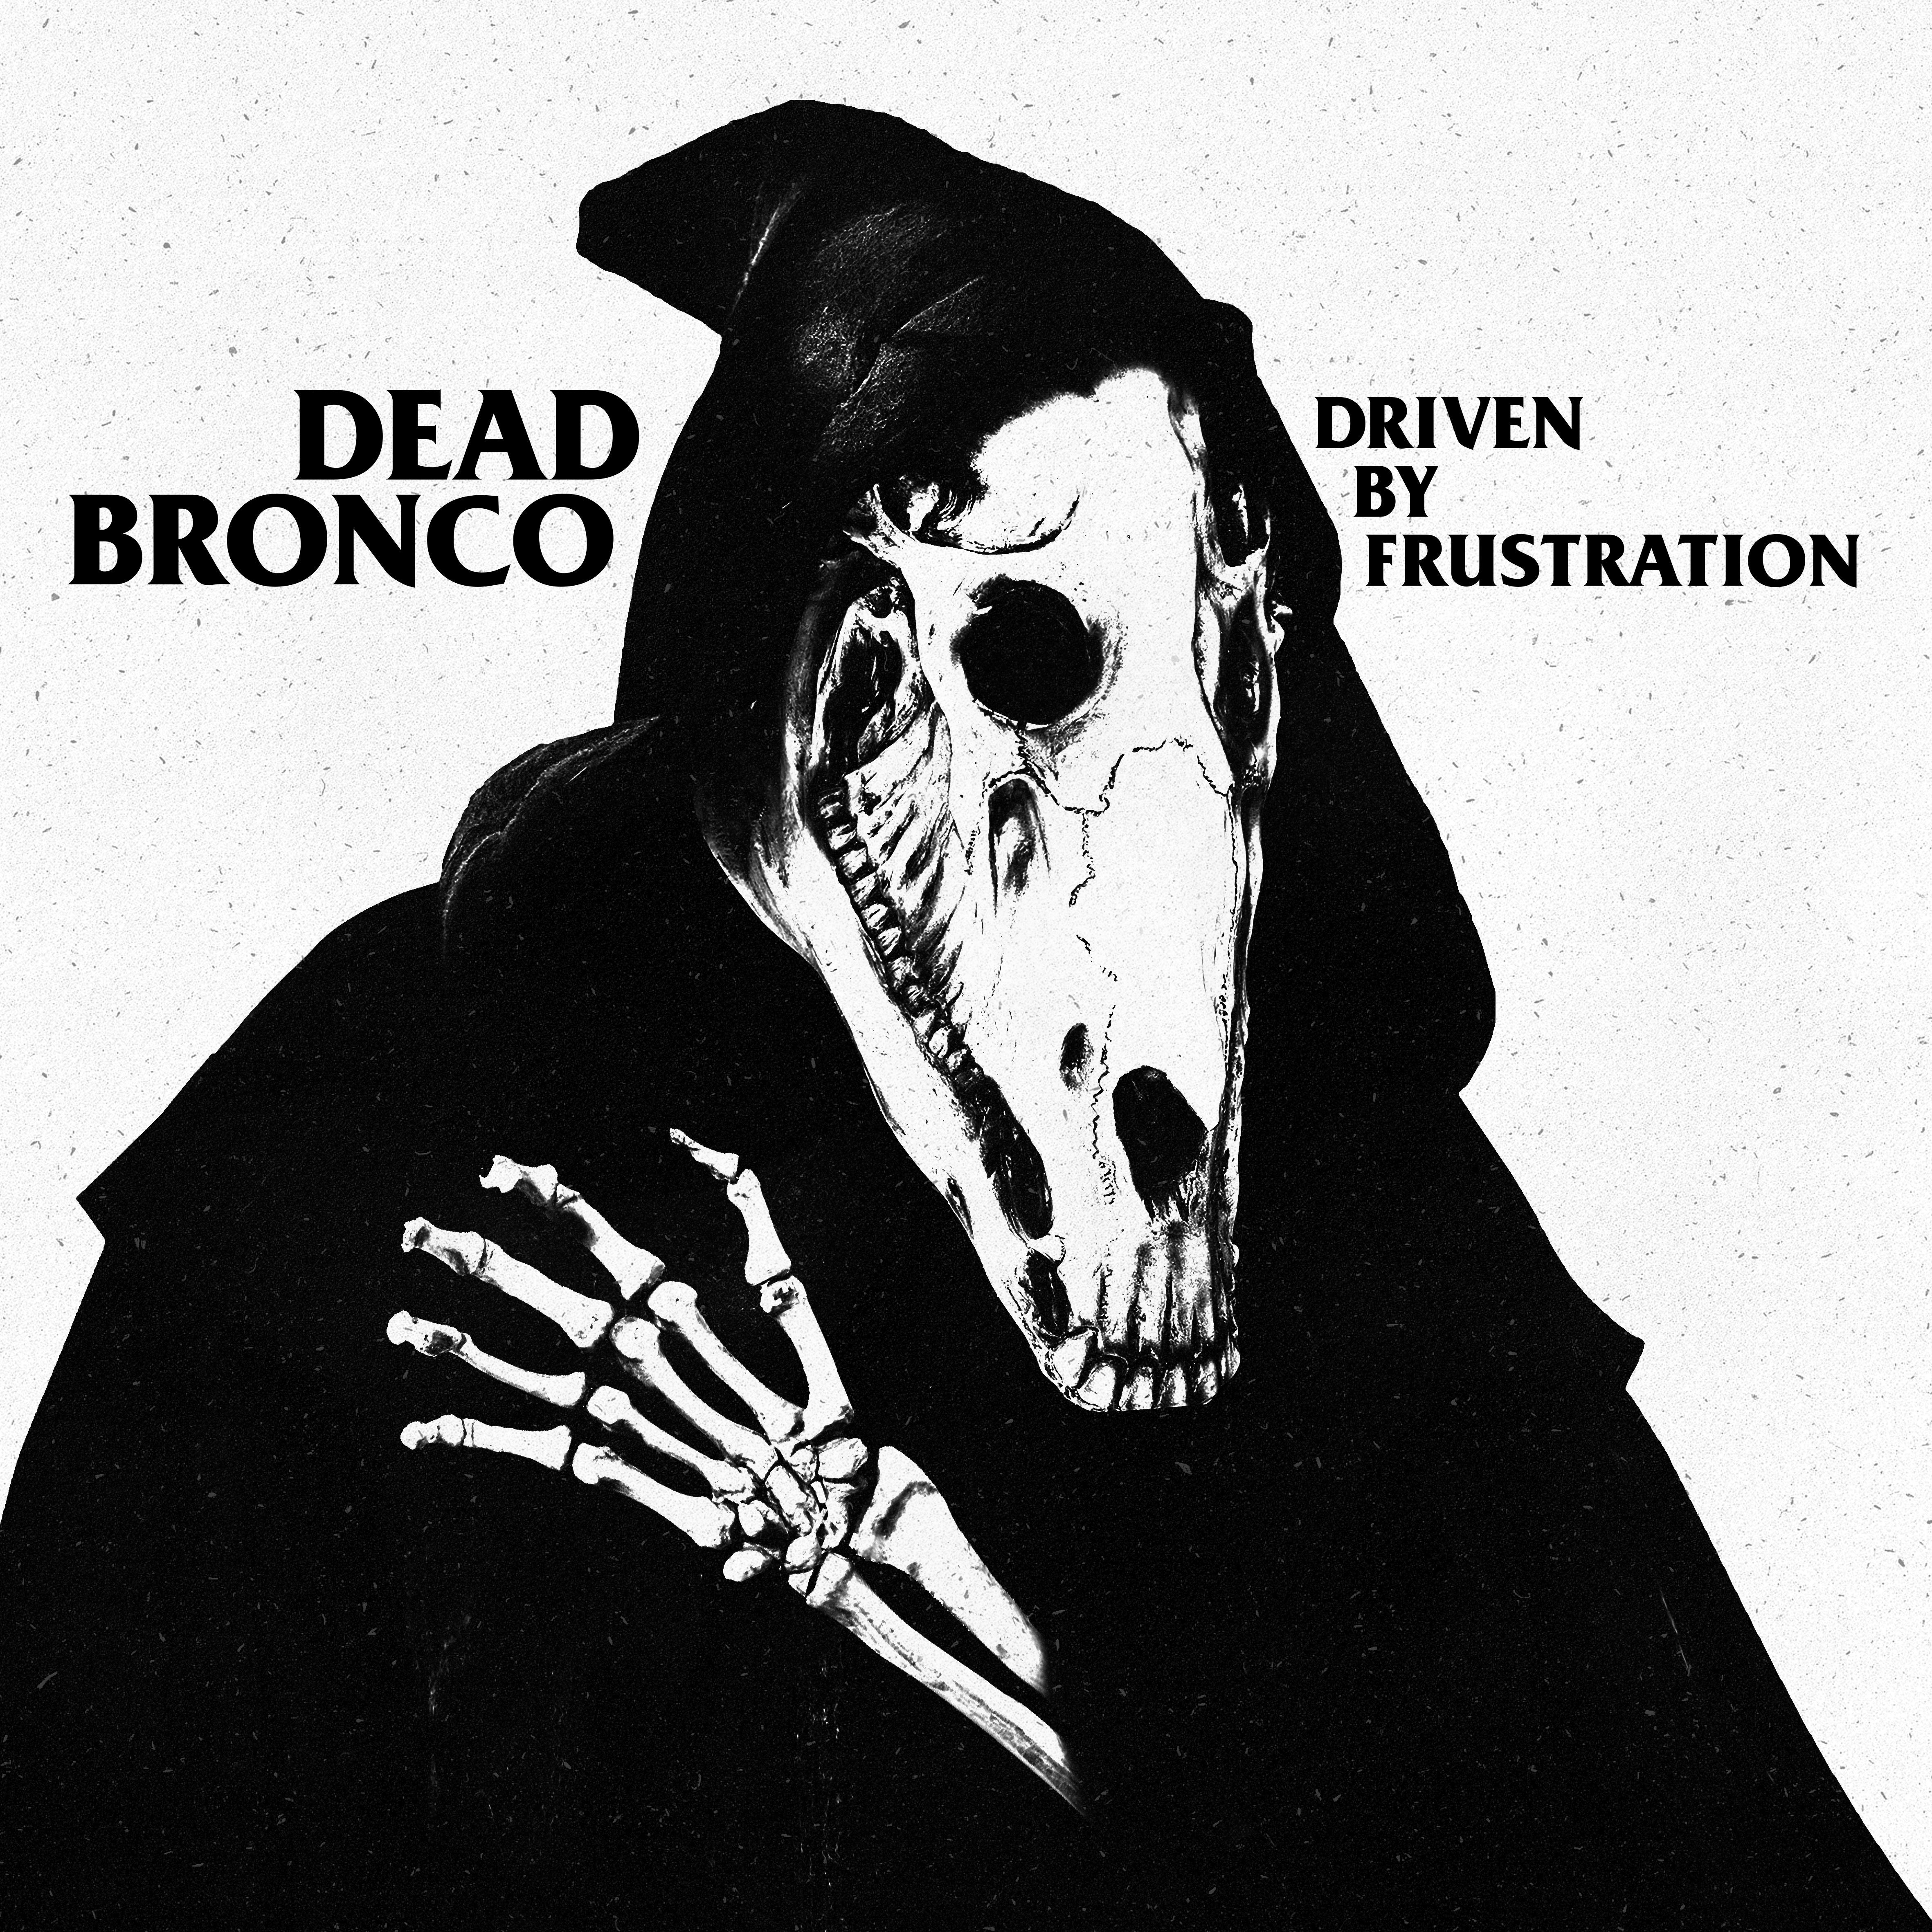 4723x4724 Driven By Frustration Dead Bronco